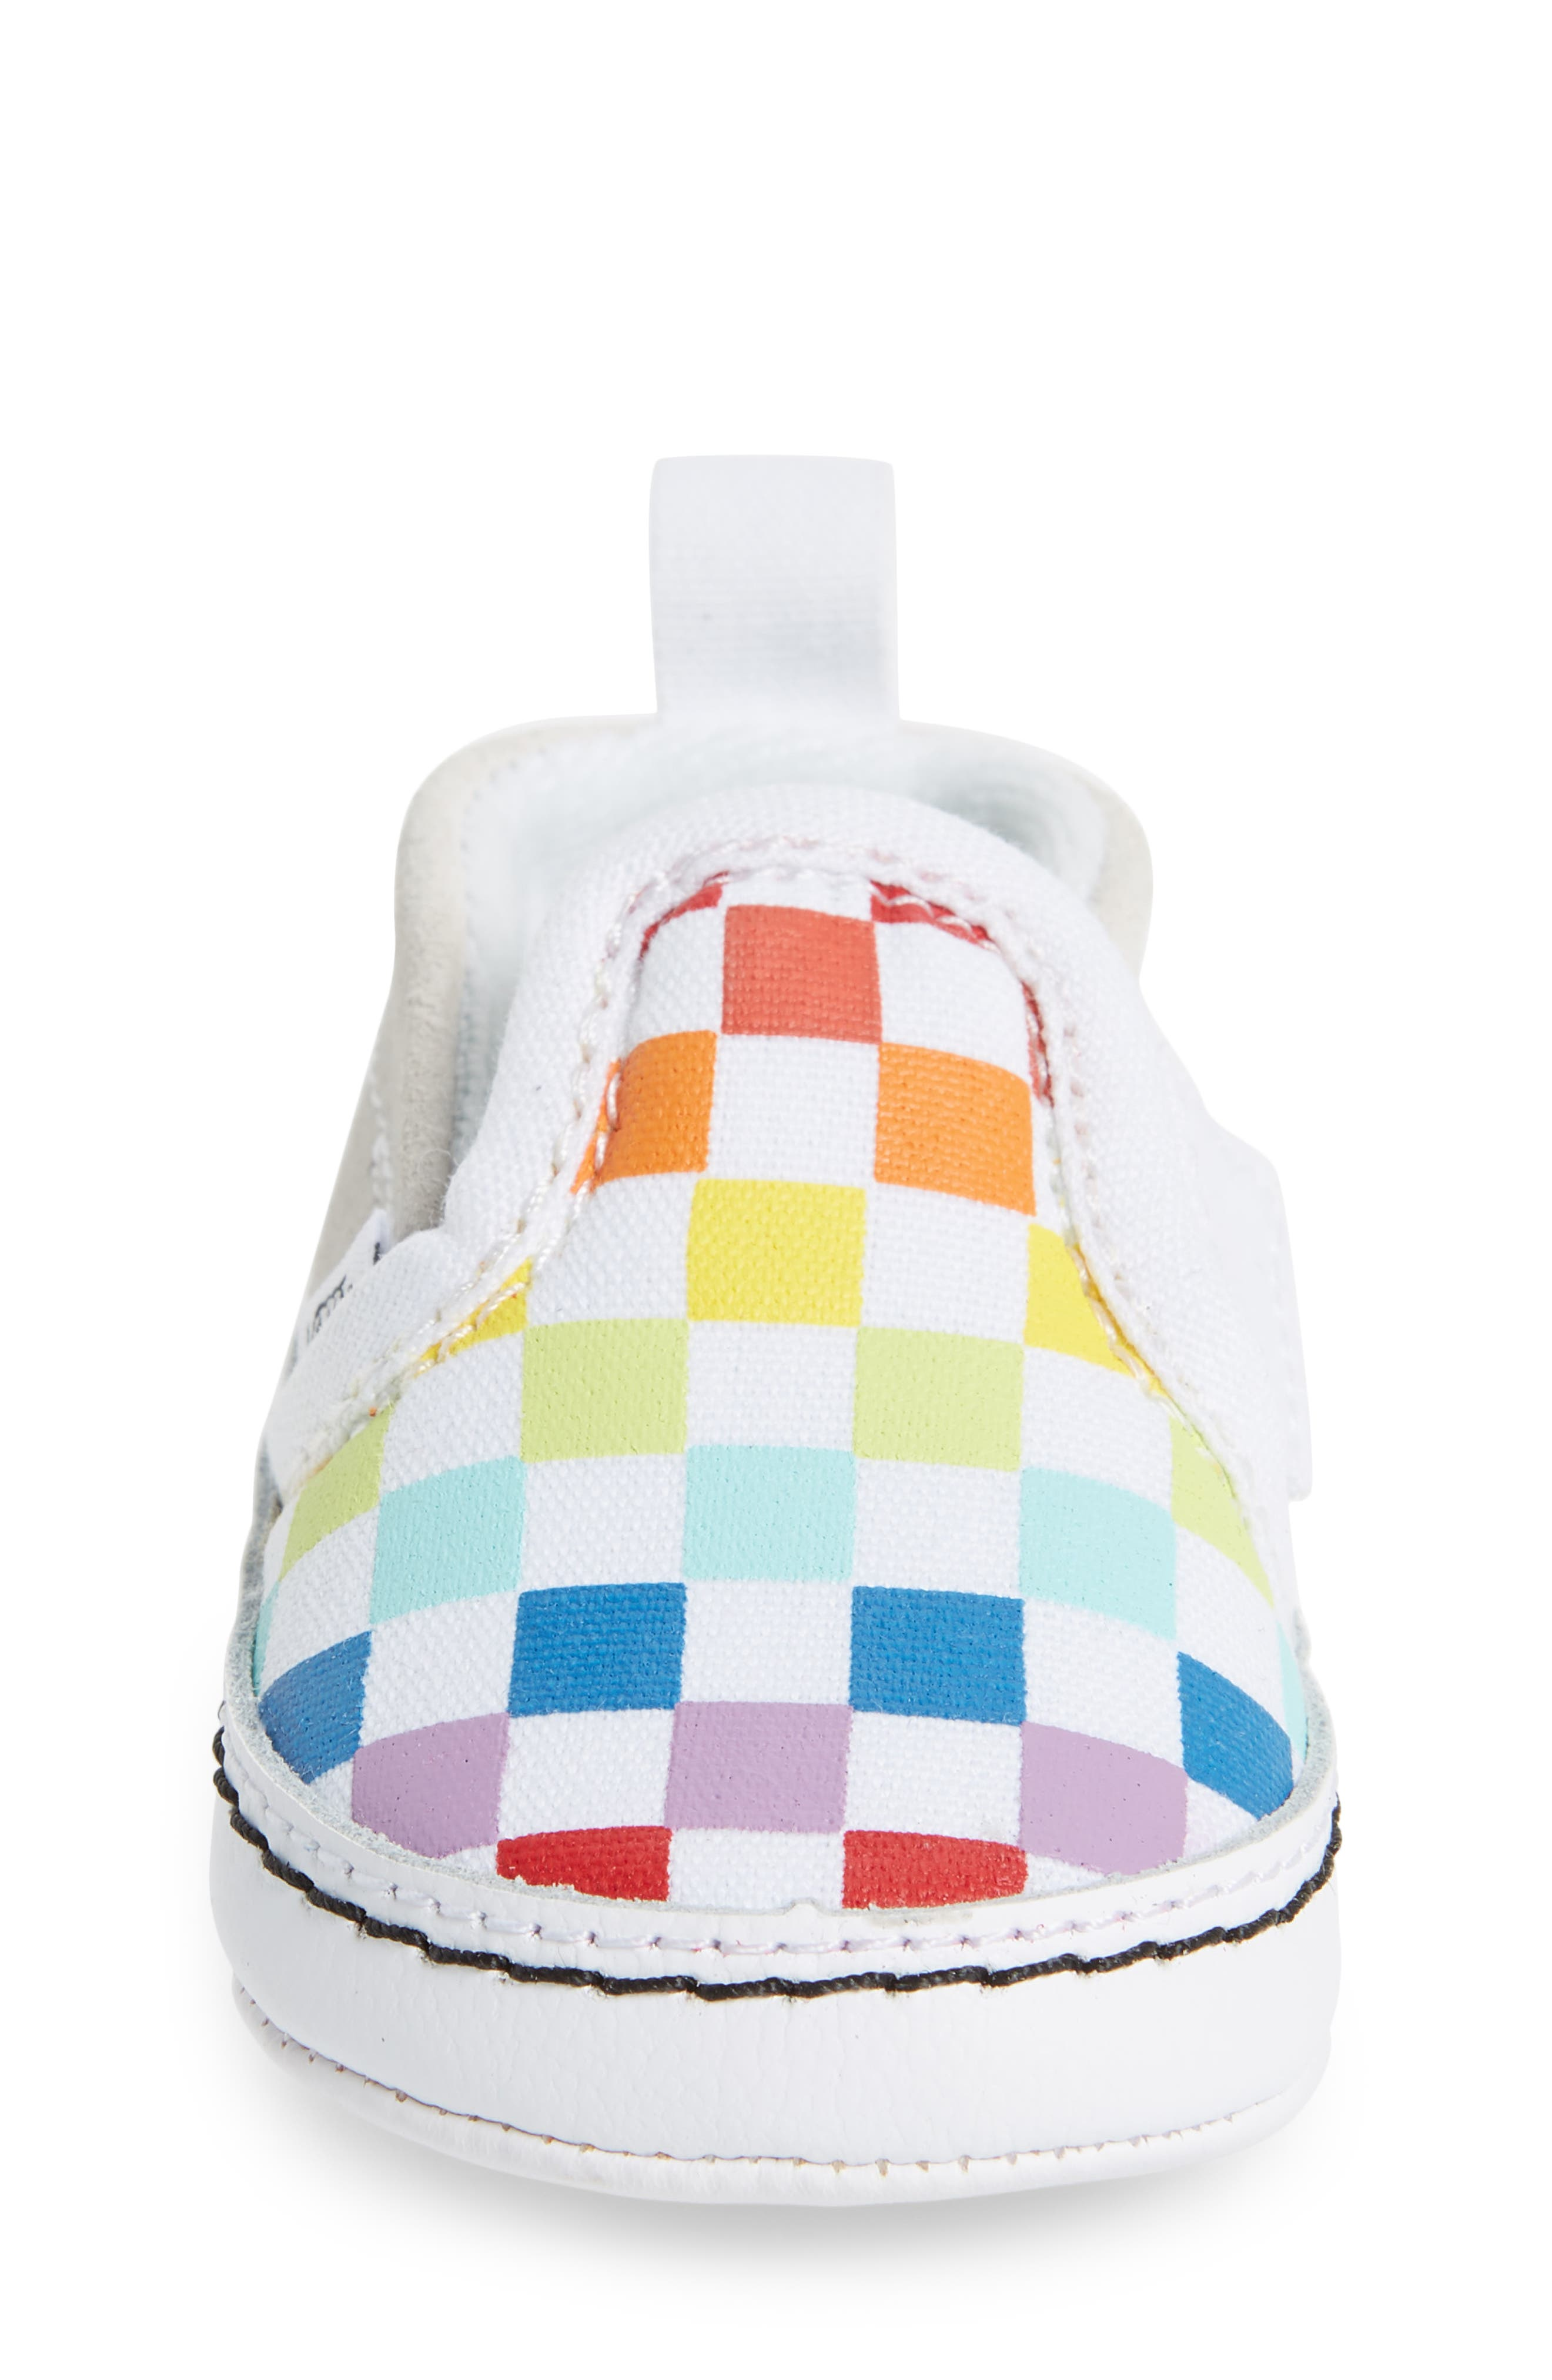 VANS, Slip-On Crib Shoe, Alternate thumbnail 4, color, CHECKERBOARD RAINBOW/ WHITE